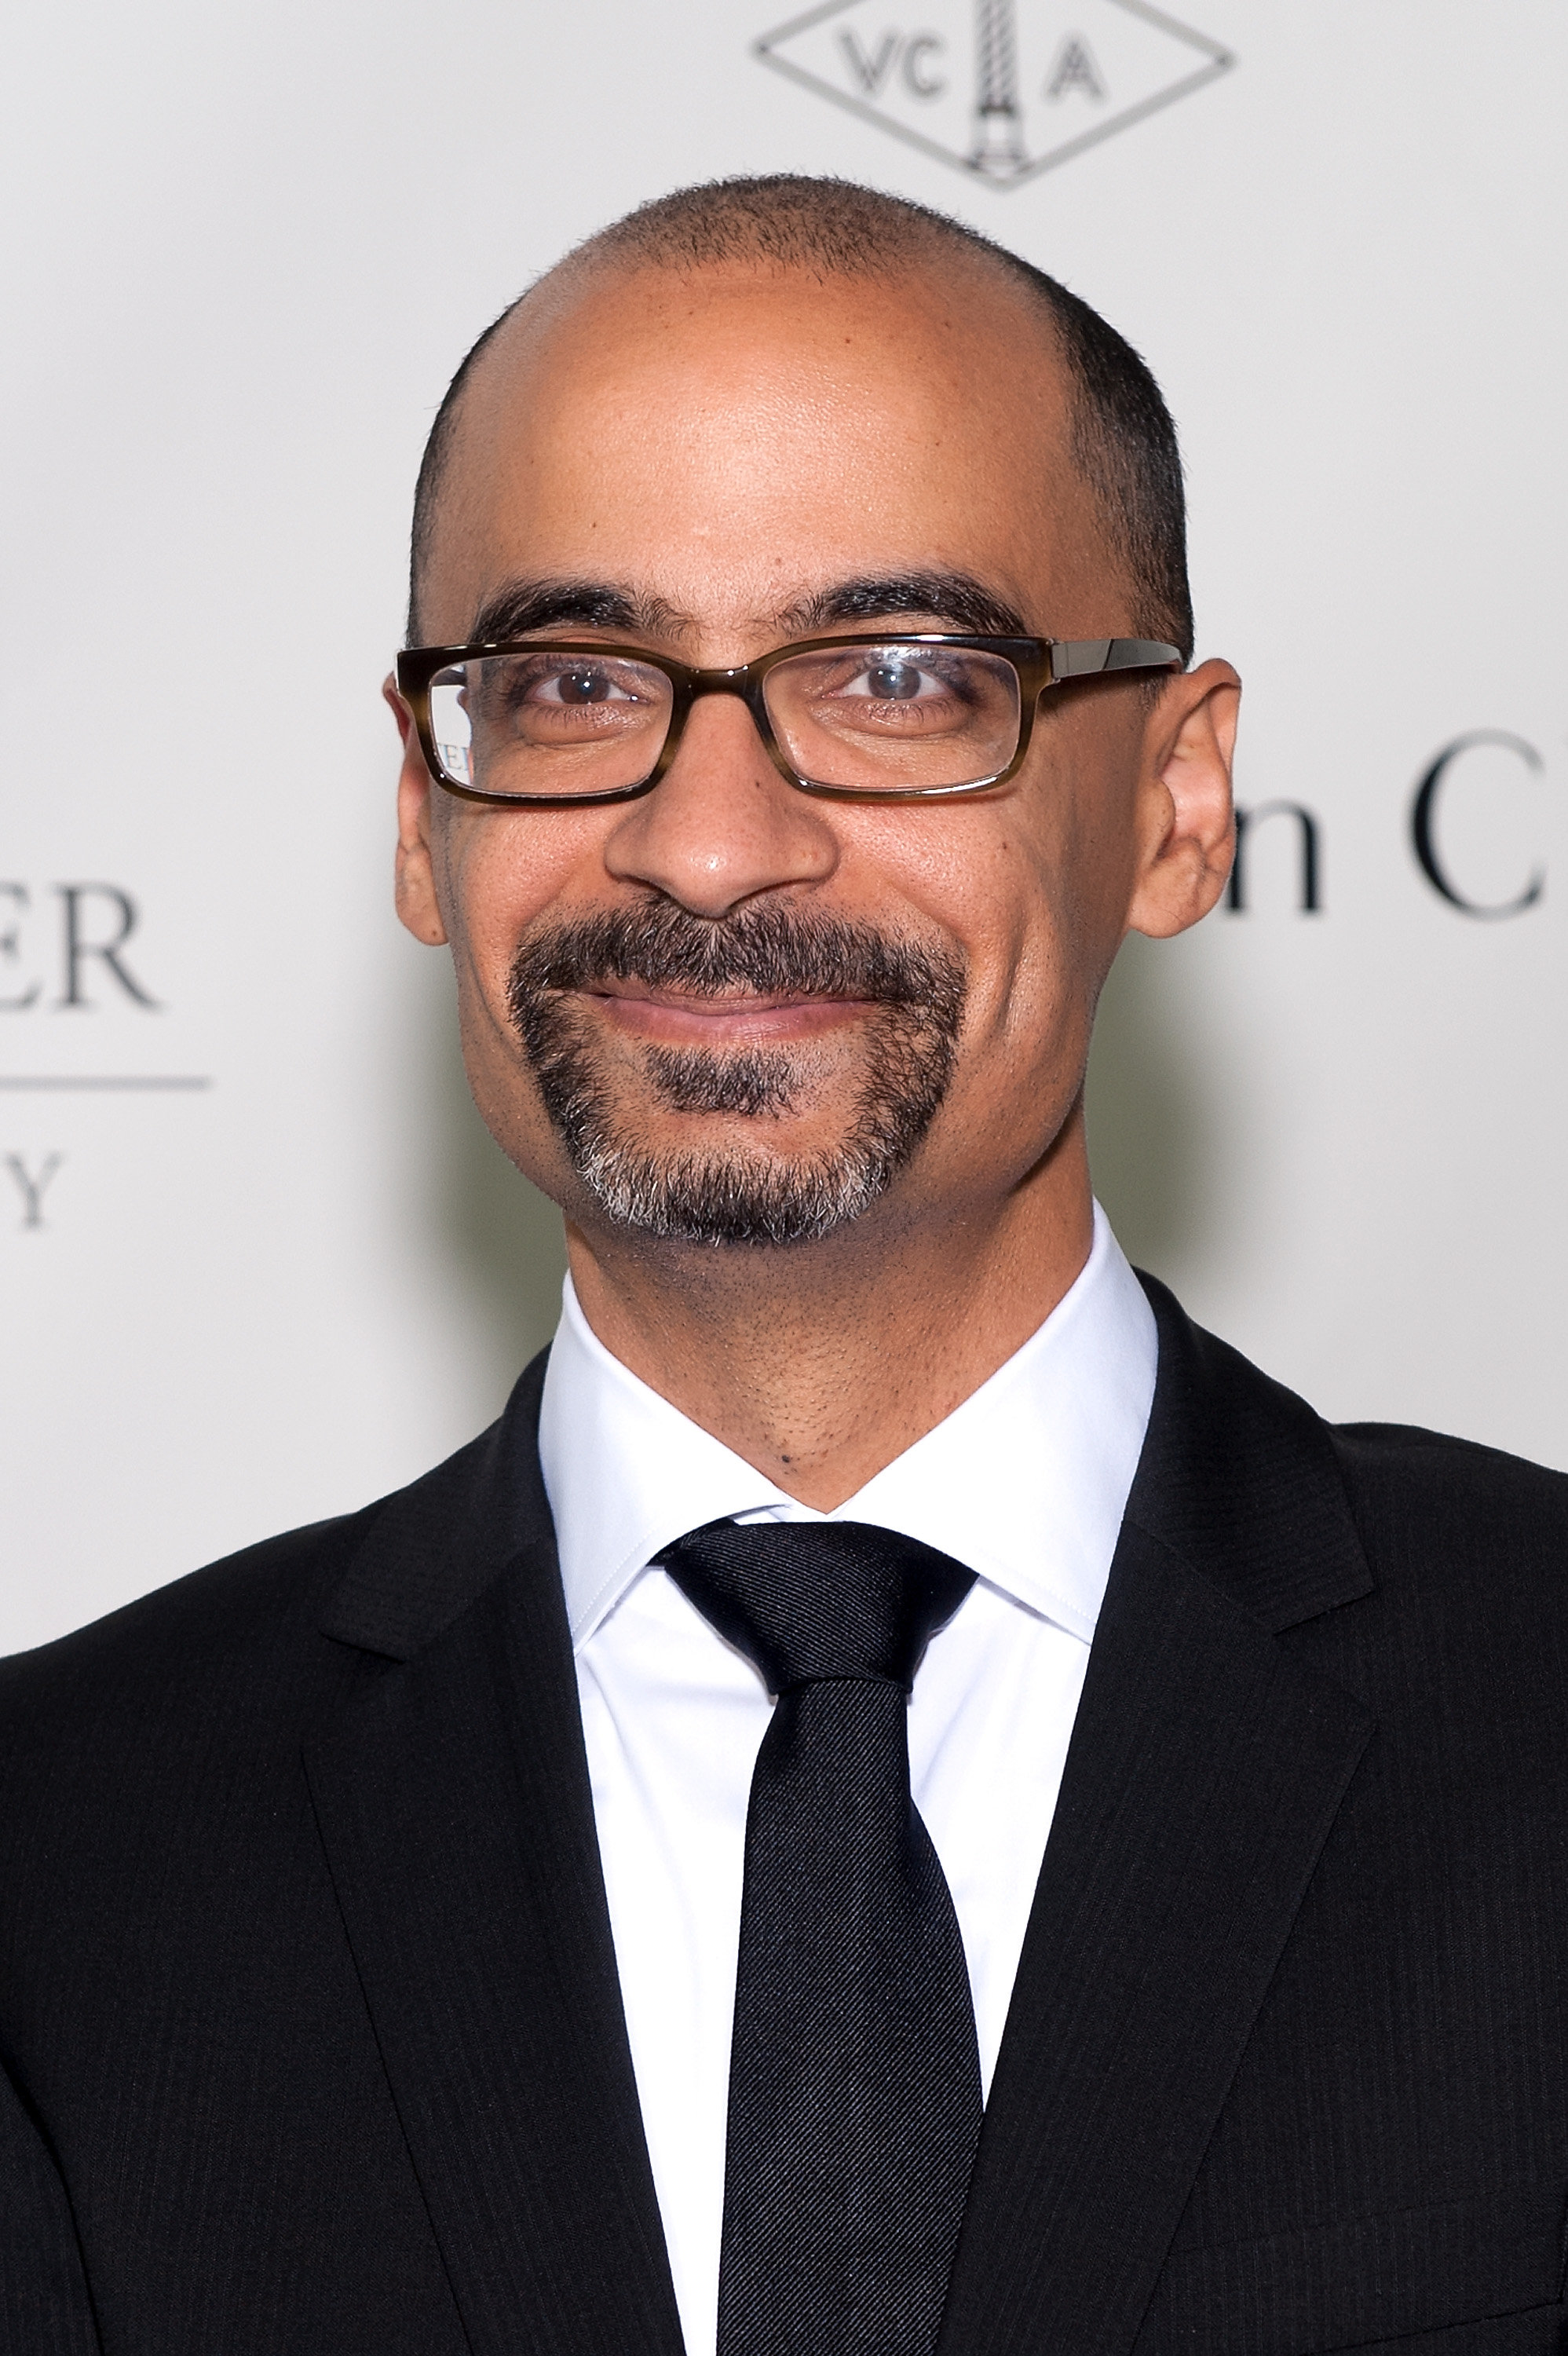 Junot Diaz attends the 2013 Norman Mailer Center gala at the New York Public Library on October 17, 2013 in New York City.